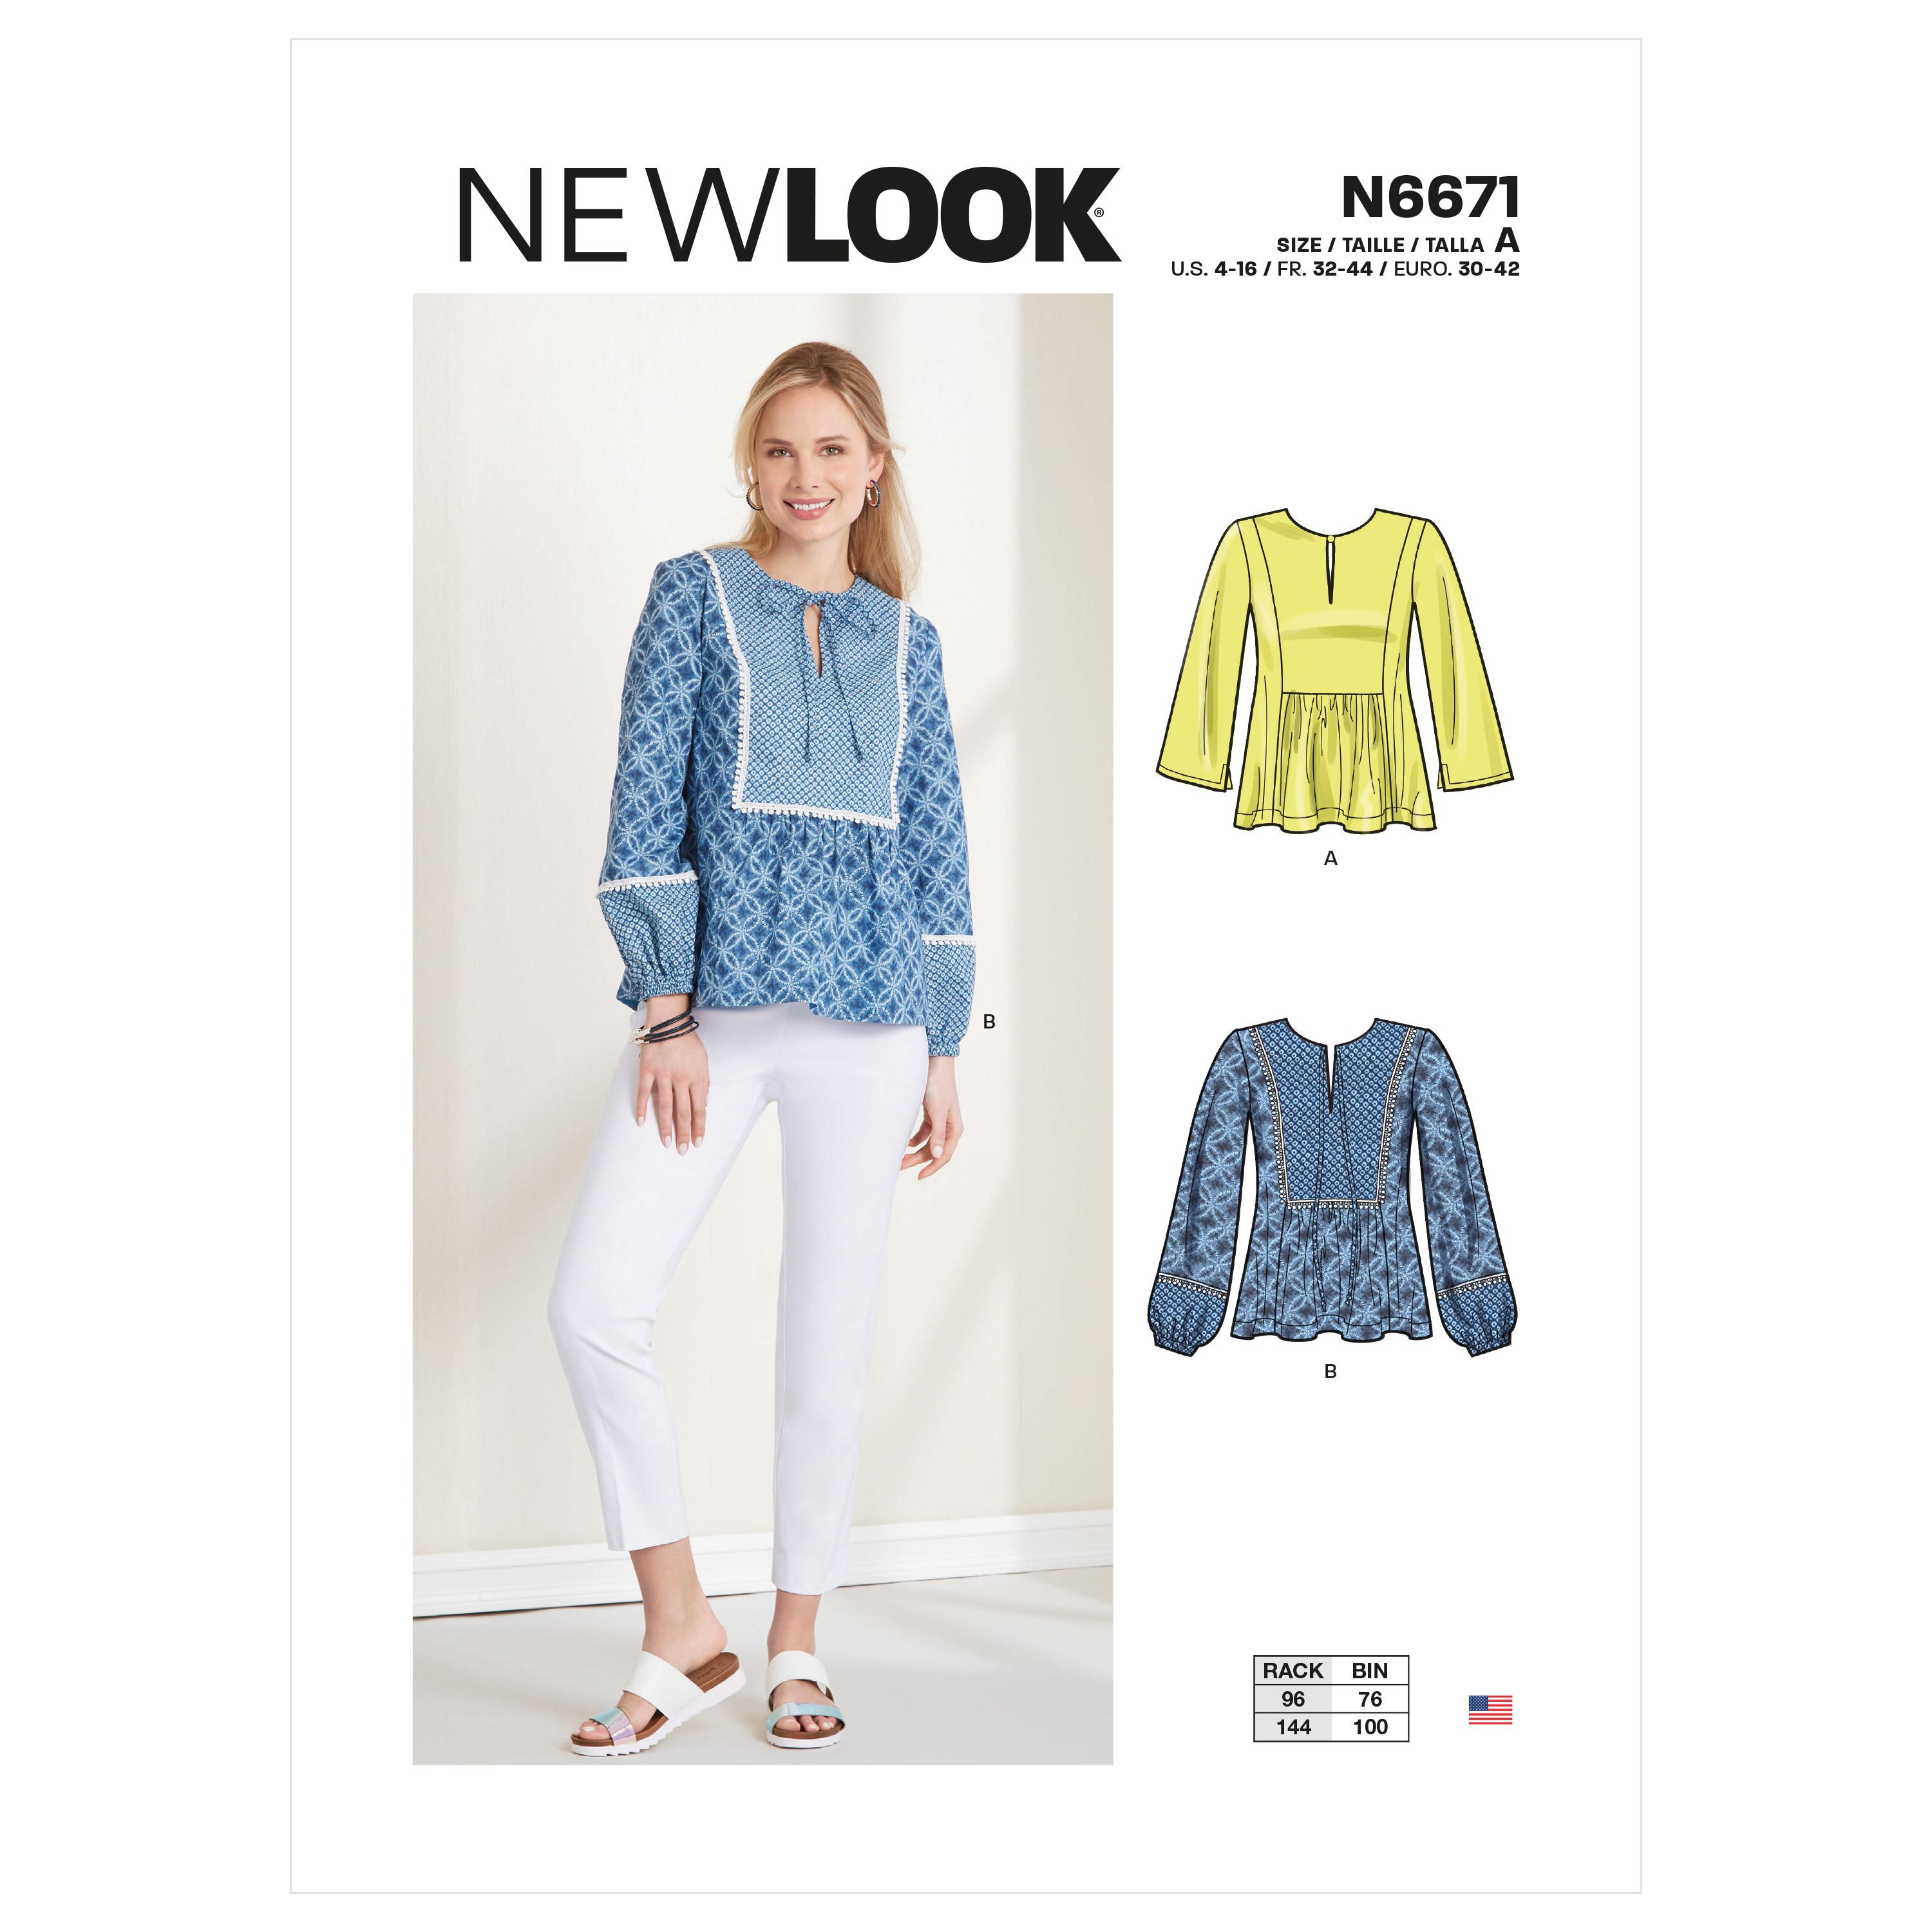 New Look Sewing Pattern N6671 Misses' Top